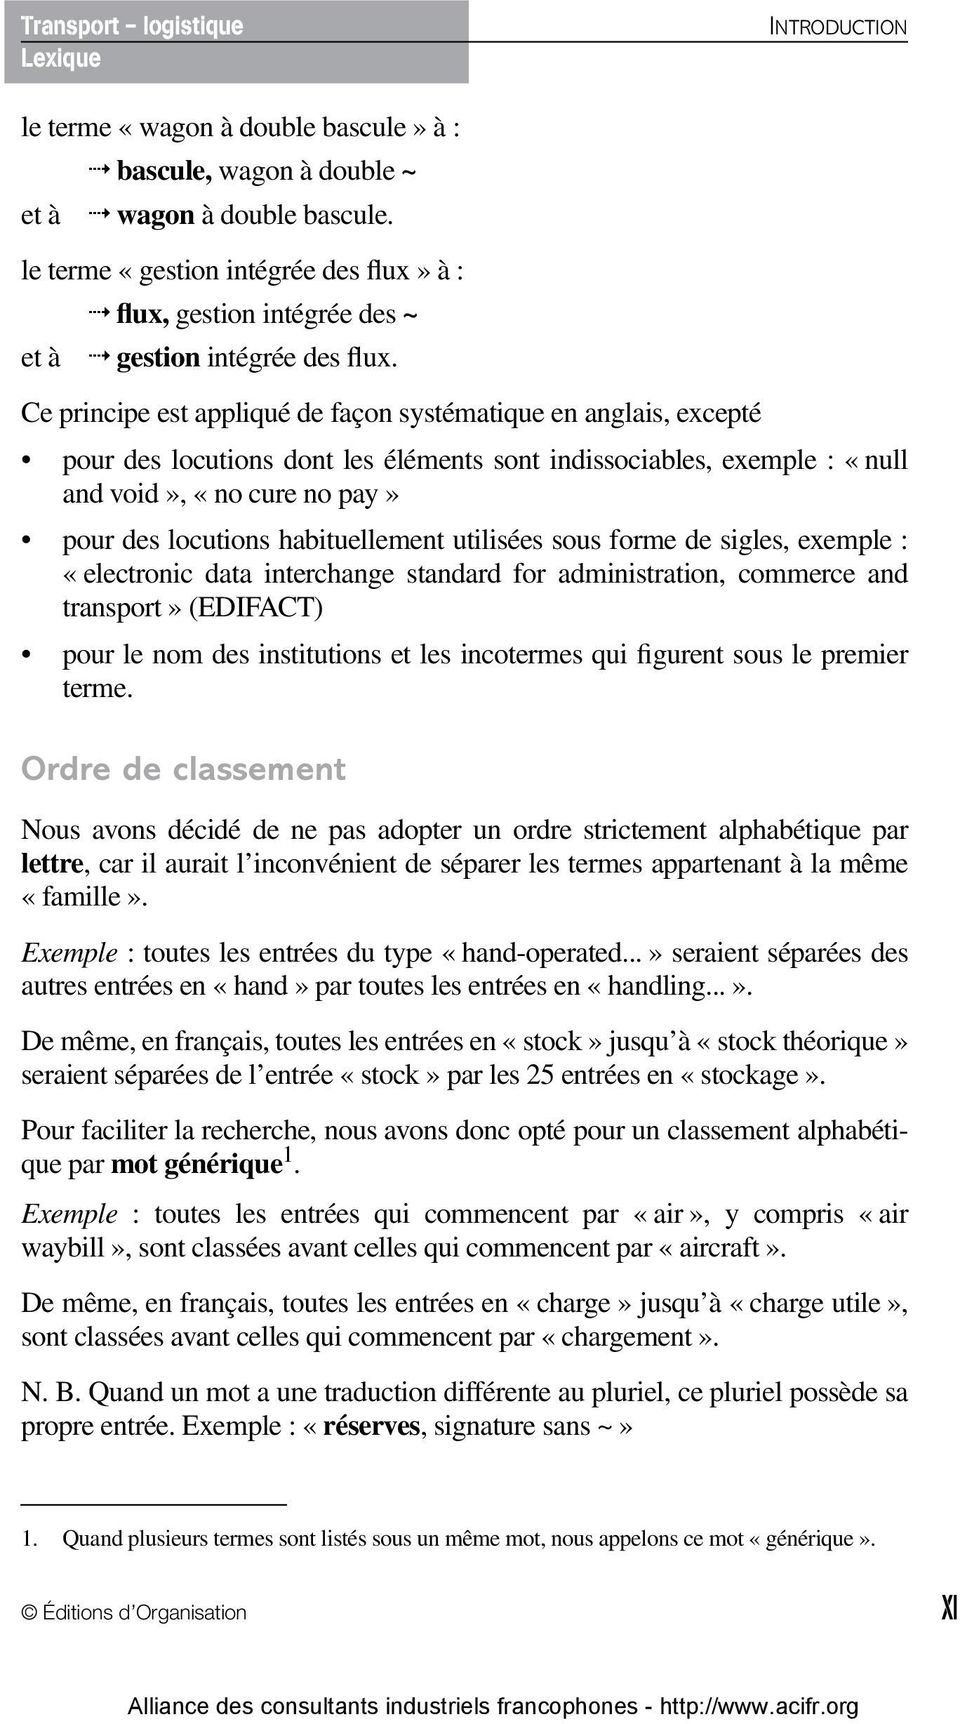 Ce principe est appliqué de façon systématique en anglais, excepté pour des locutions dont les éléments sont indissociables, exemple : «null and void», «no cure no pay» pour des locutions